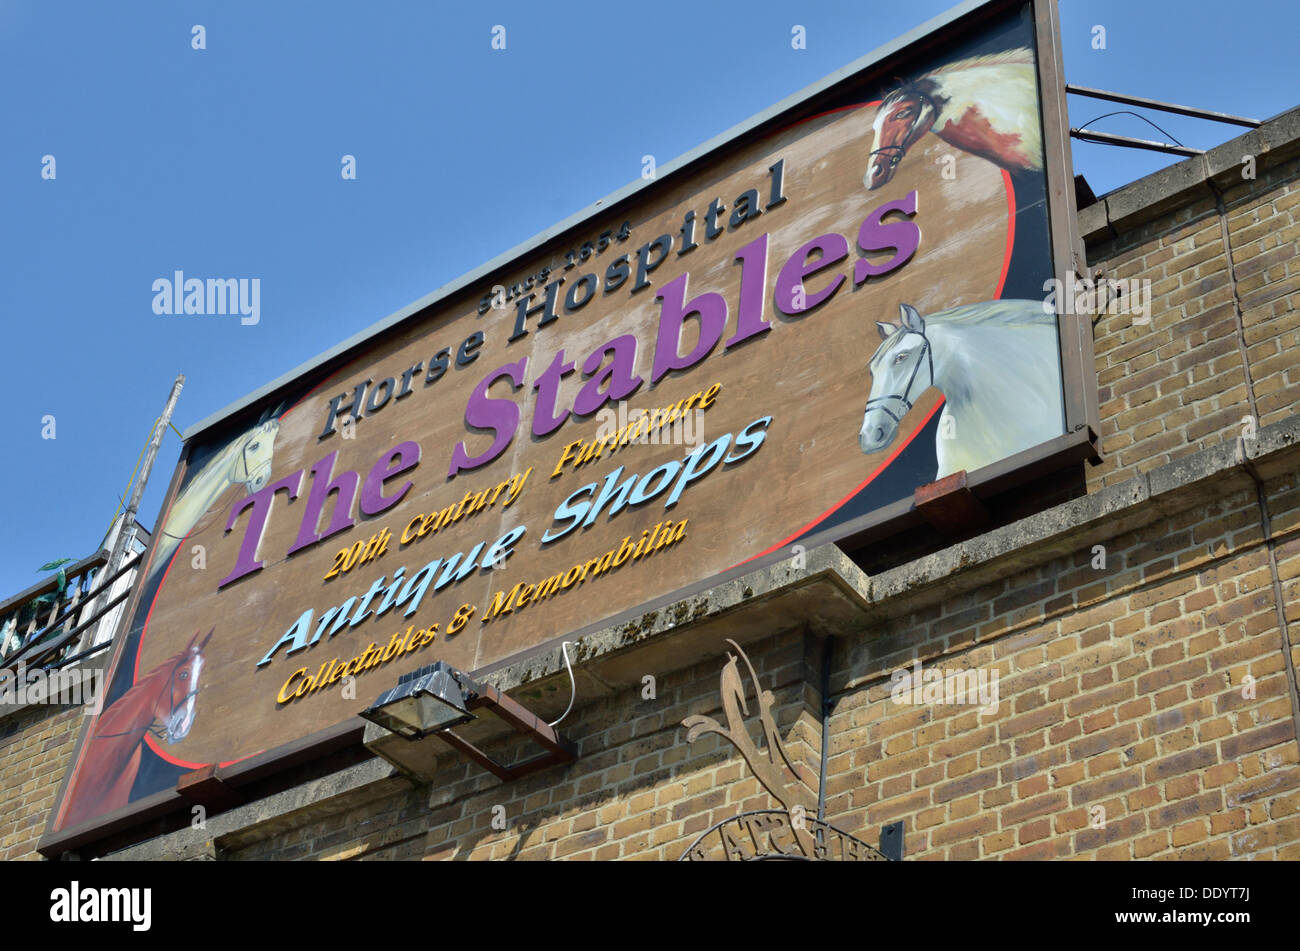 The Stables Horse Hospital antique shops sign, Camden Town, London, UK. - Stock Image